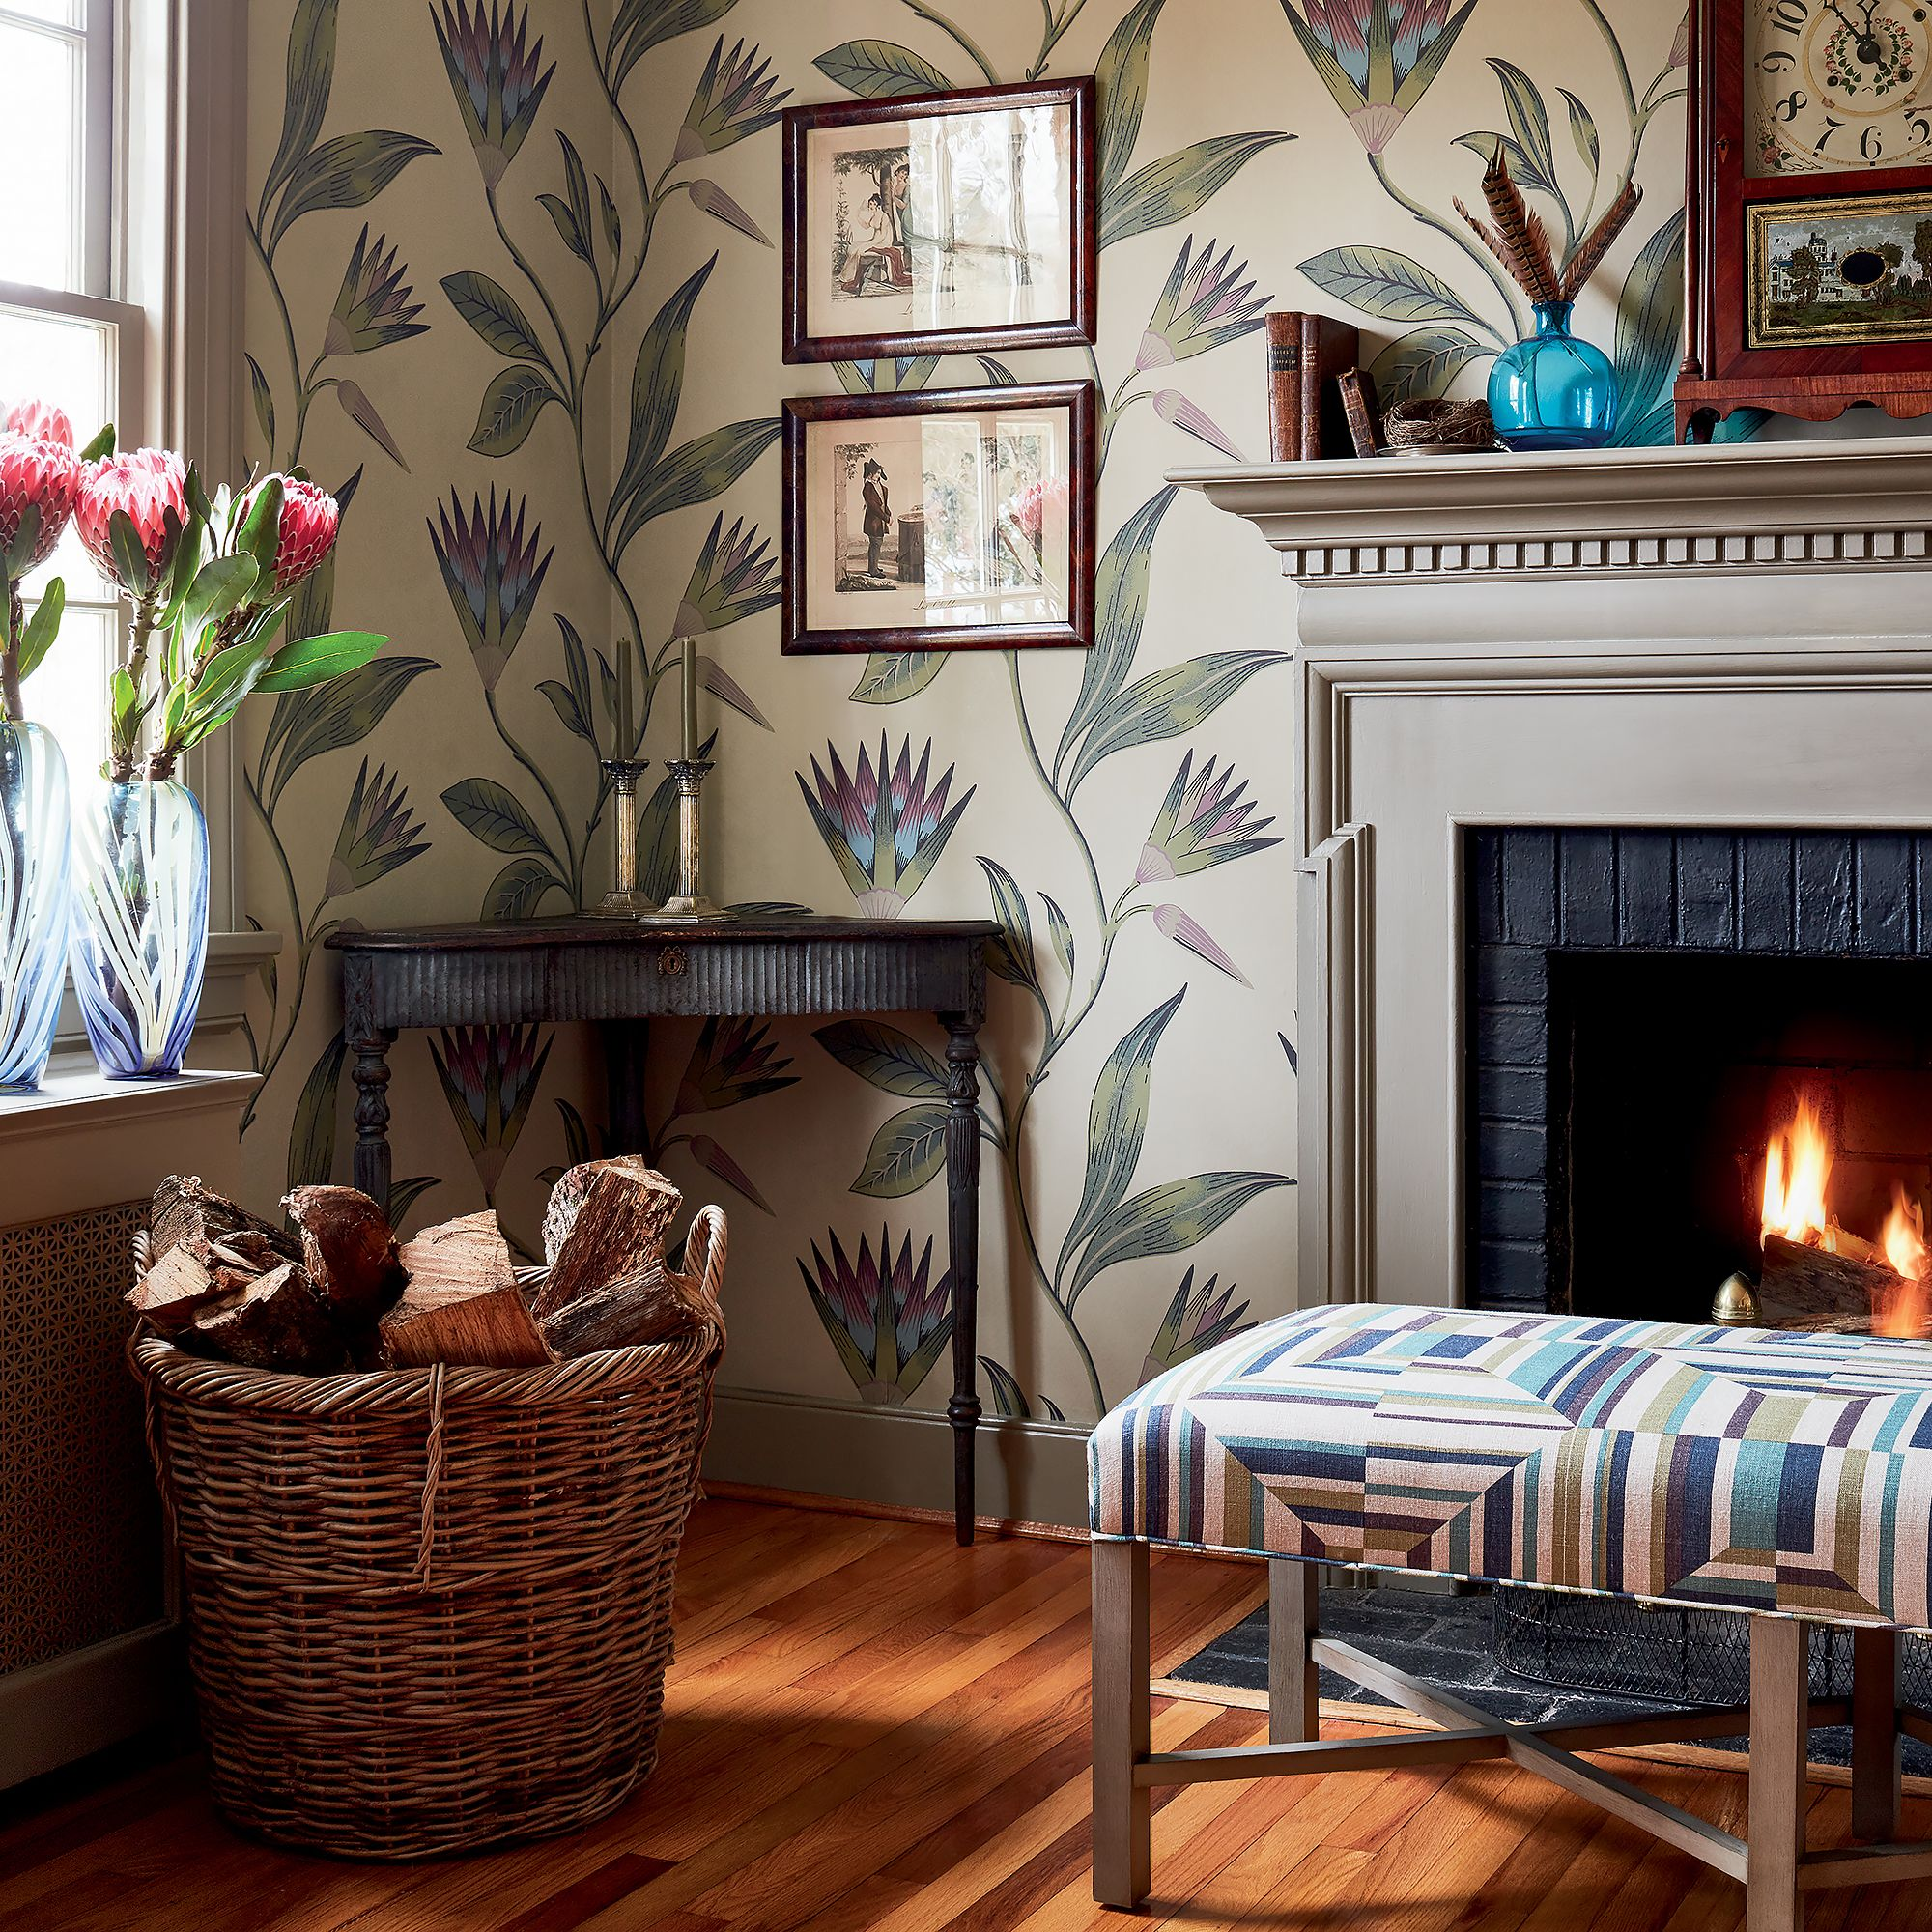 Cleo Vine from Savoy Collection Living room style